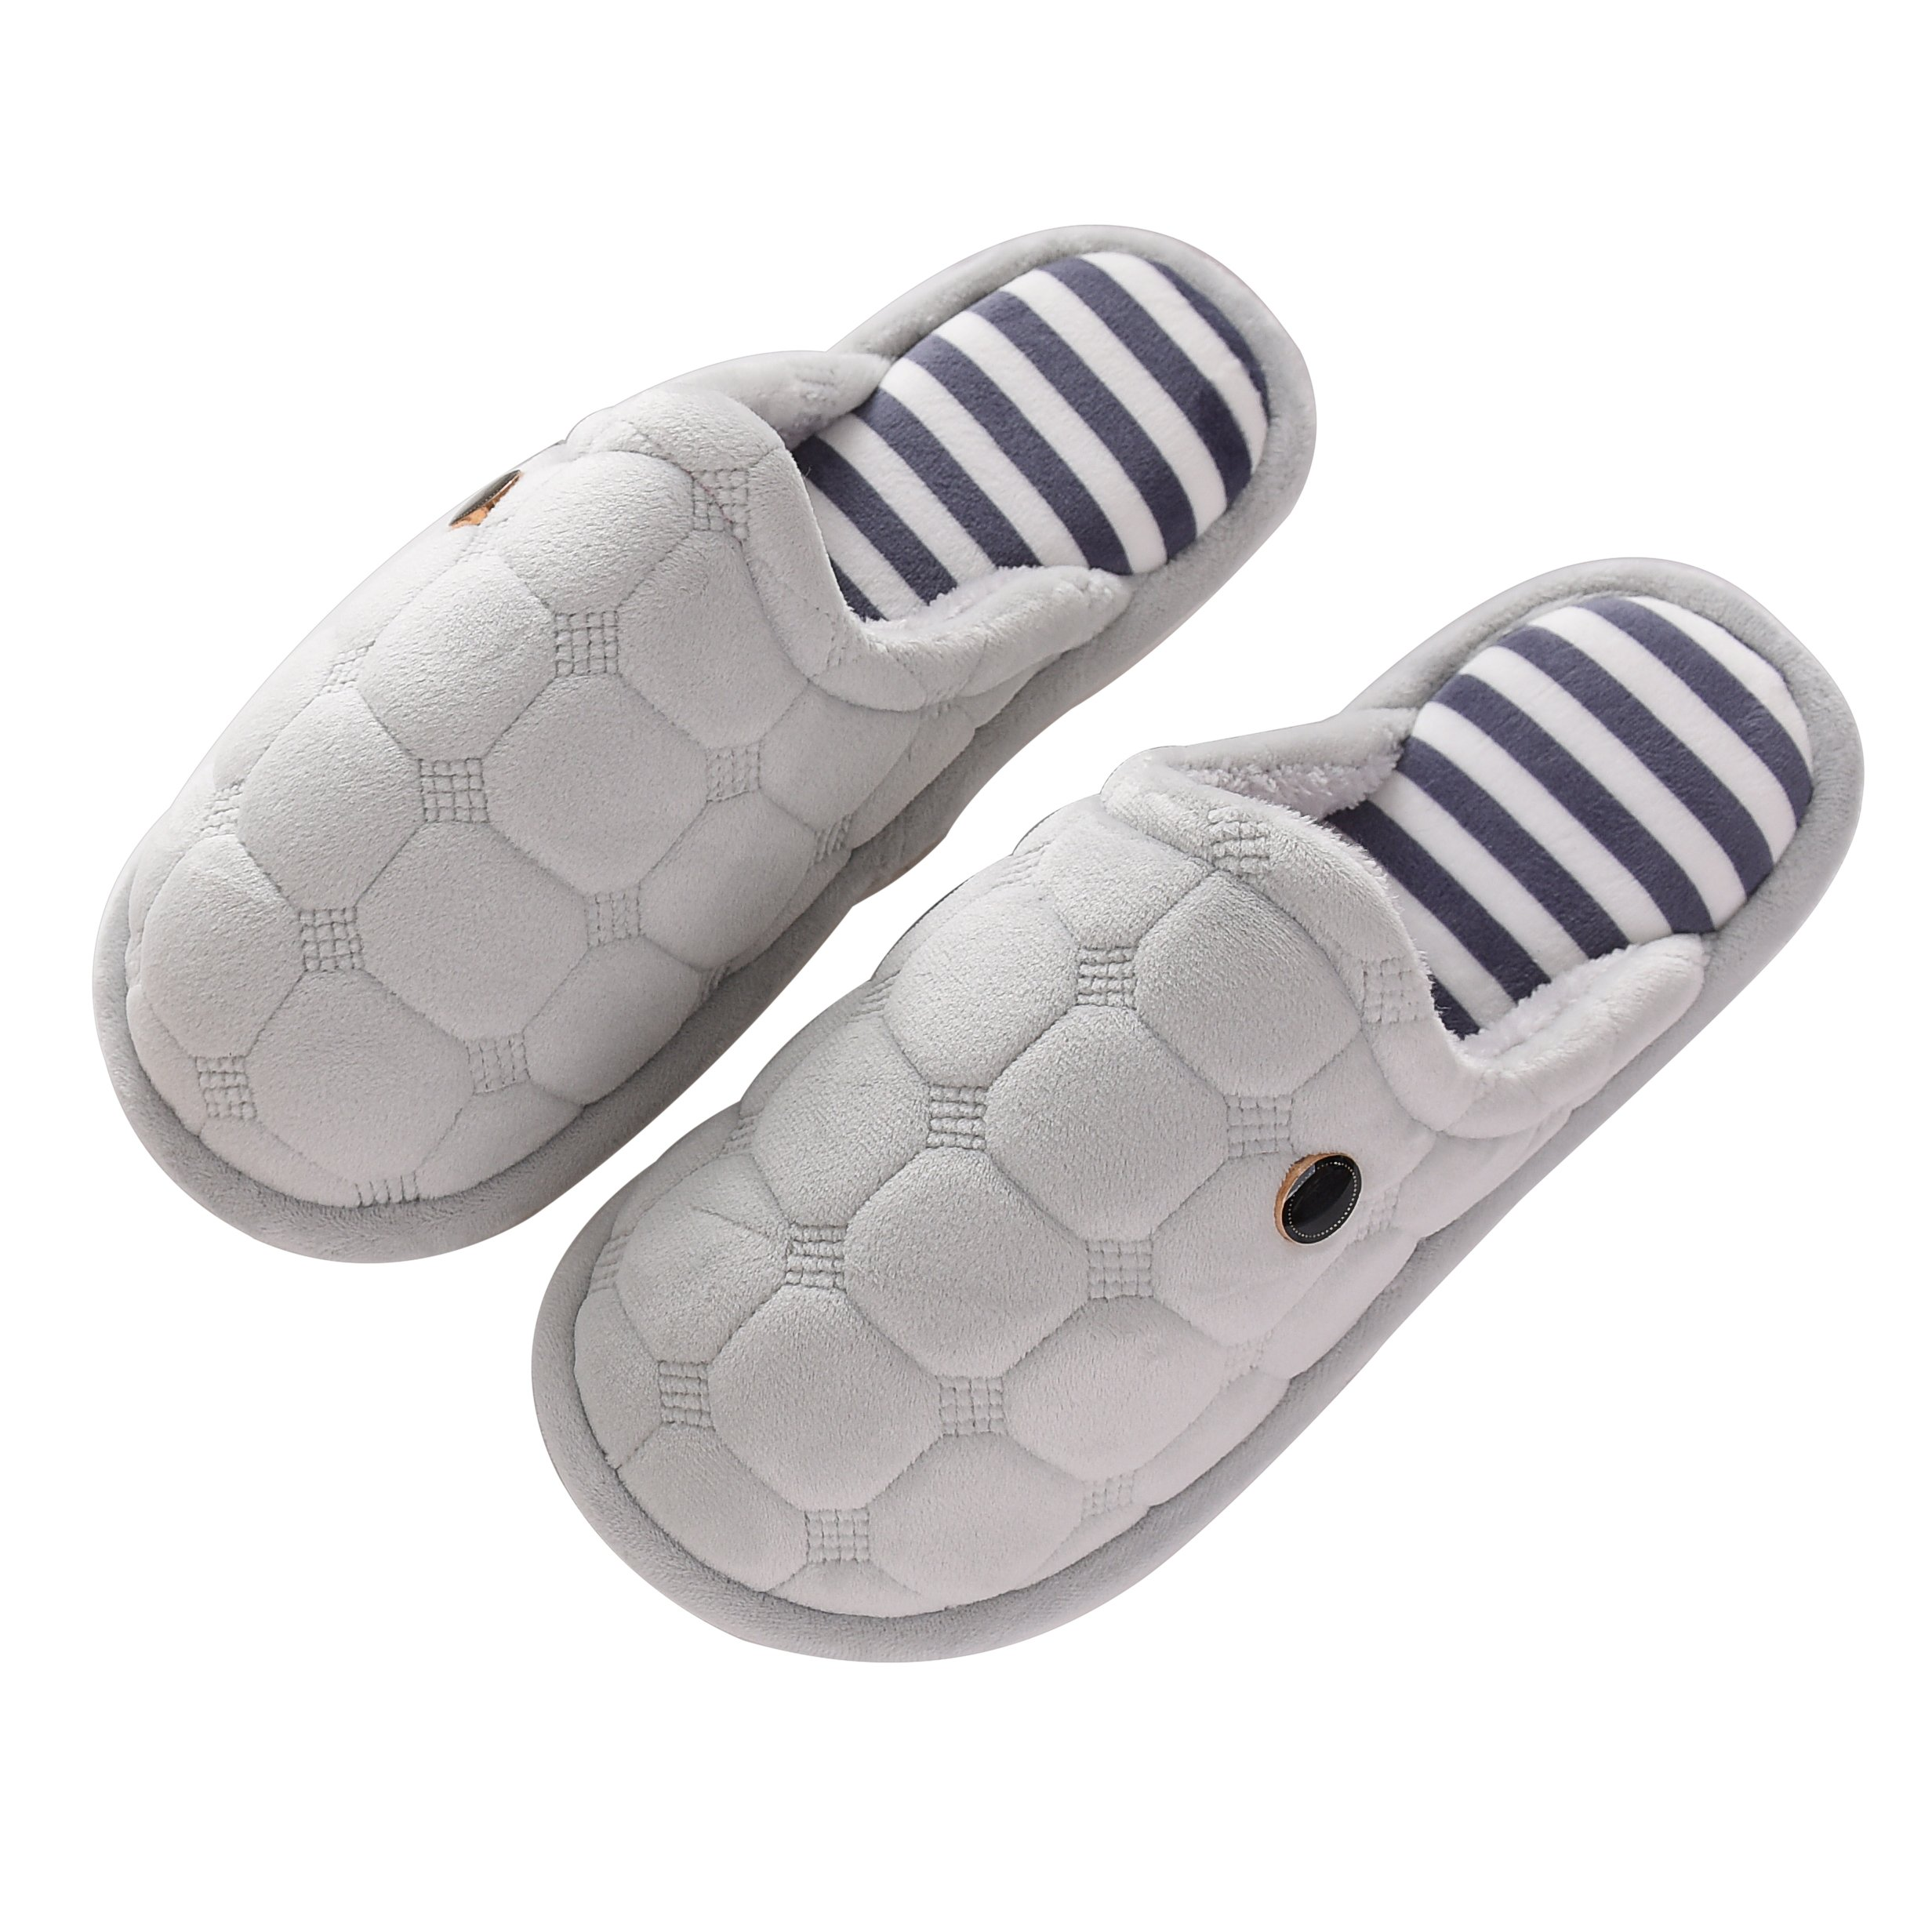 OxygenBeauty Indoor Slippers, Cotton Slippers, Winter Warm Slipper, House Slippers, Comfortable Anti-Slip Floor House Slippers for Women and Men, Winter Couples House Floor Slippers (Men43-45)